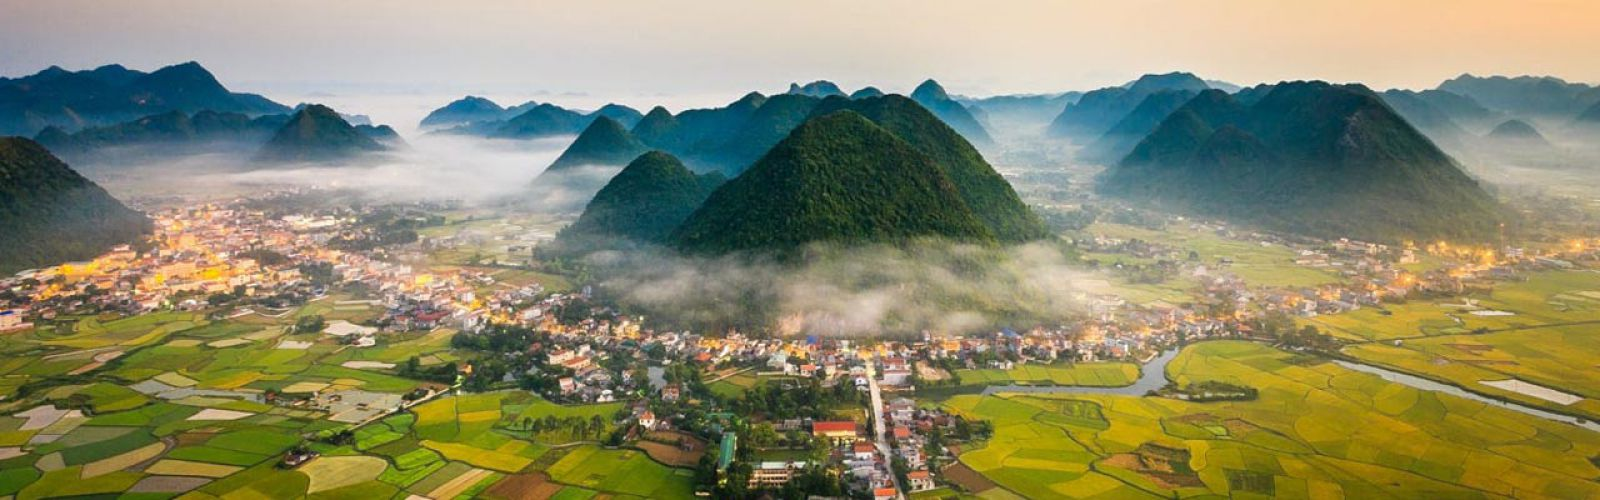 Vietnam Tours & Sightseeing